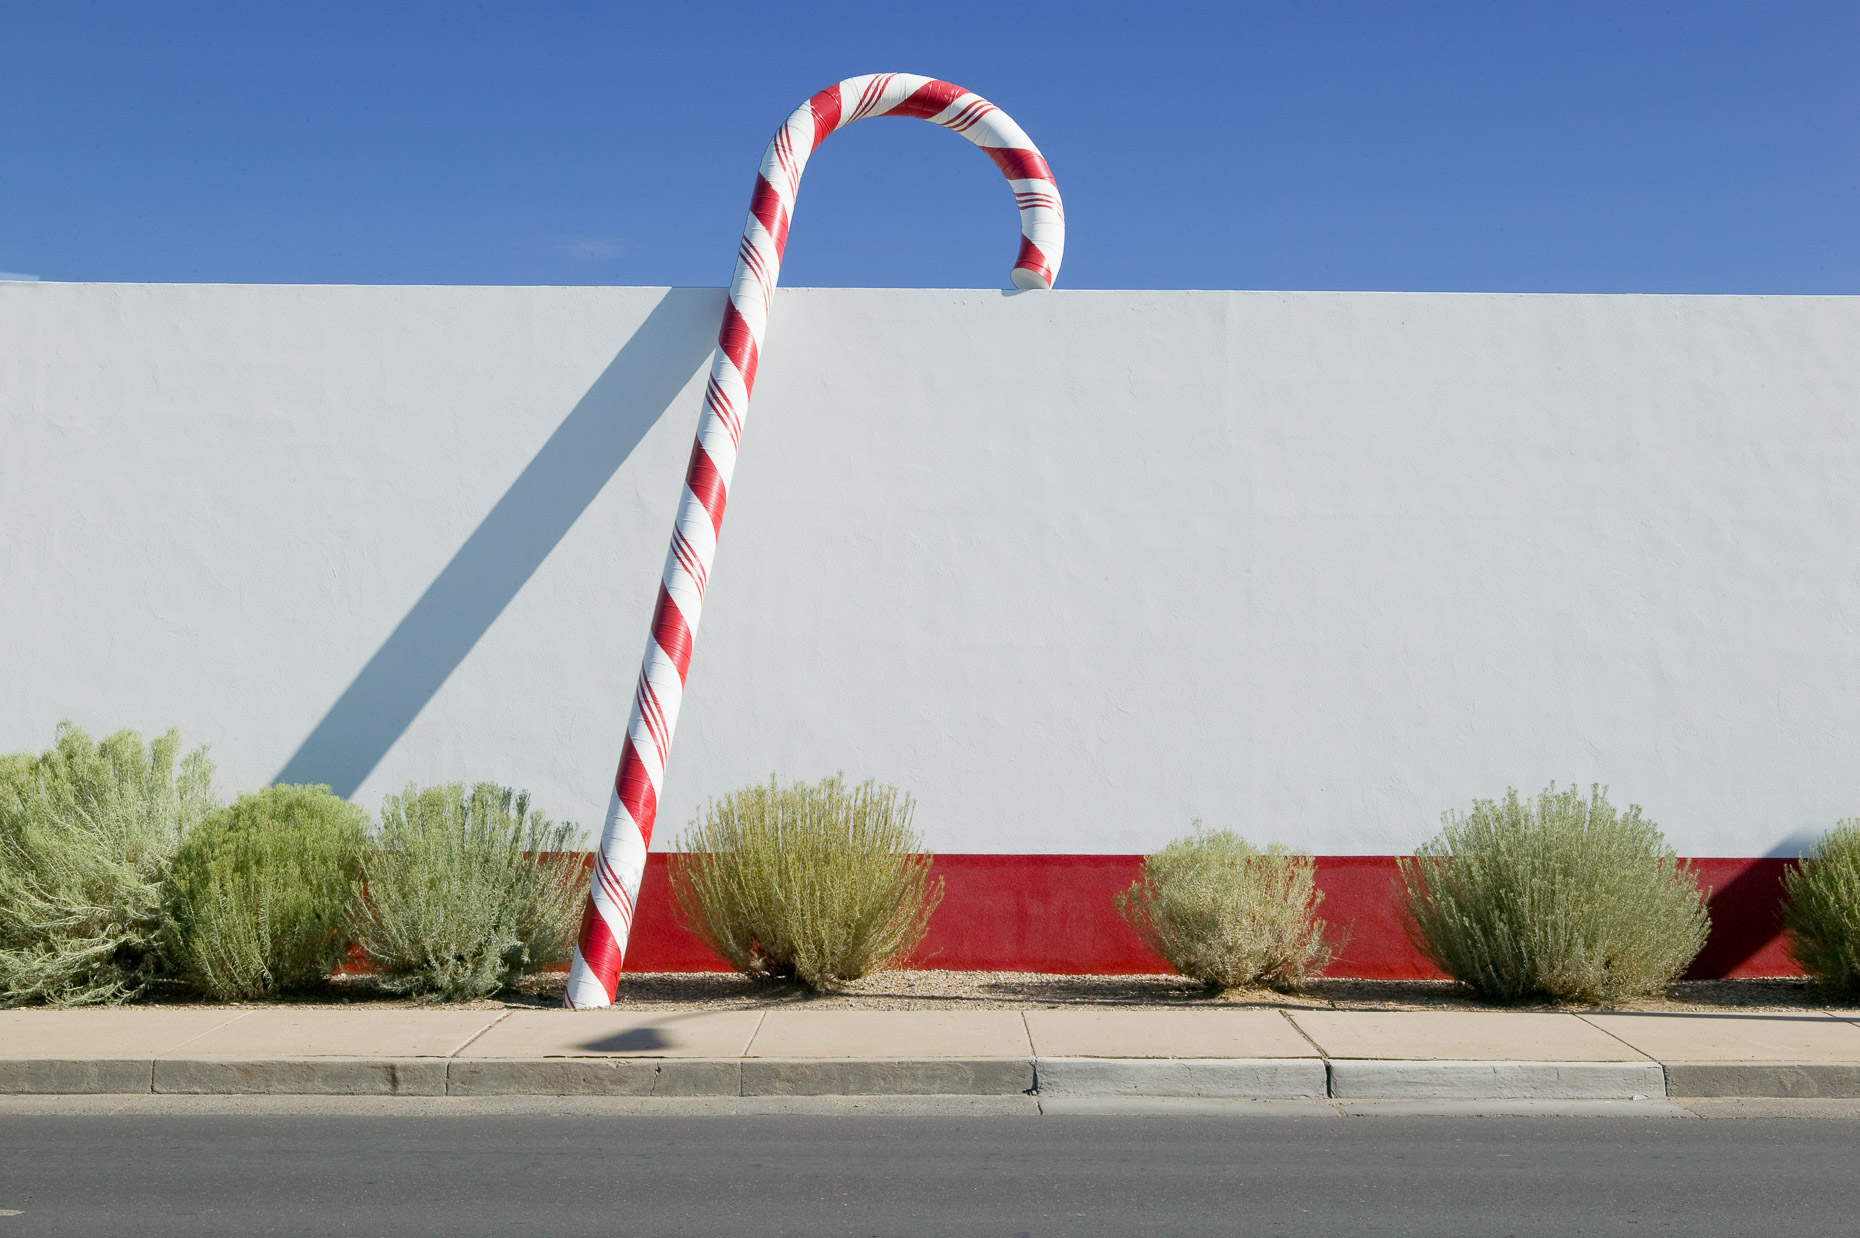 Large candy cane prop against white wall of commercial building by David Zaitz